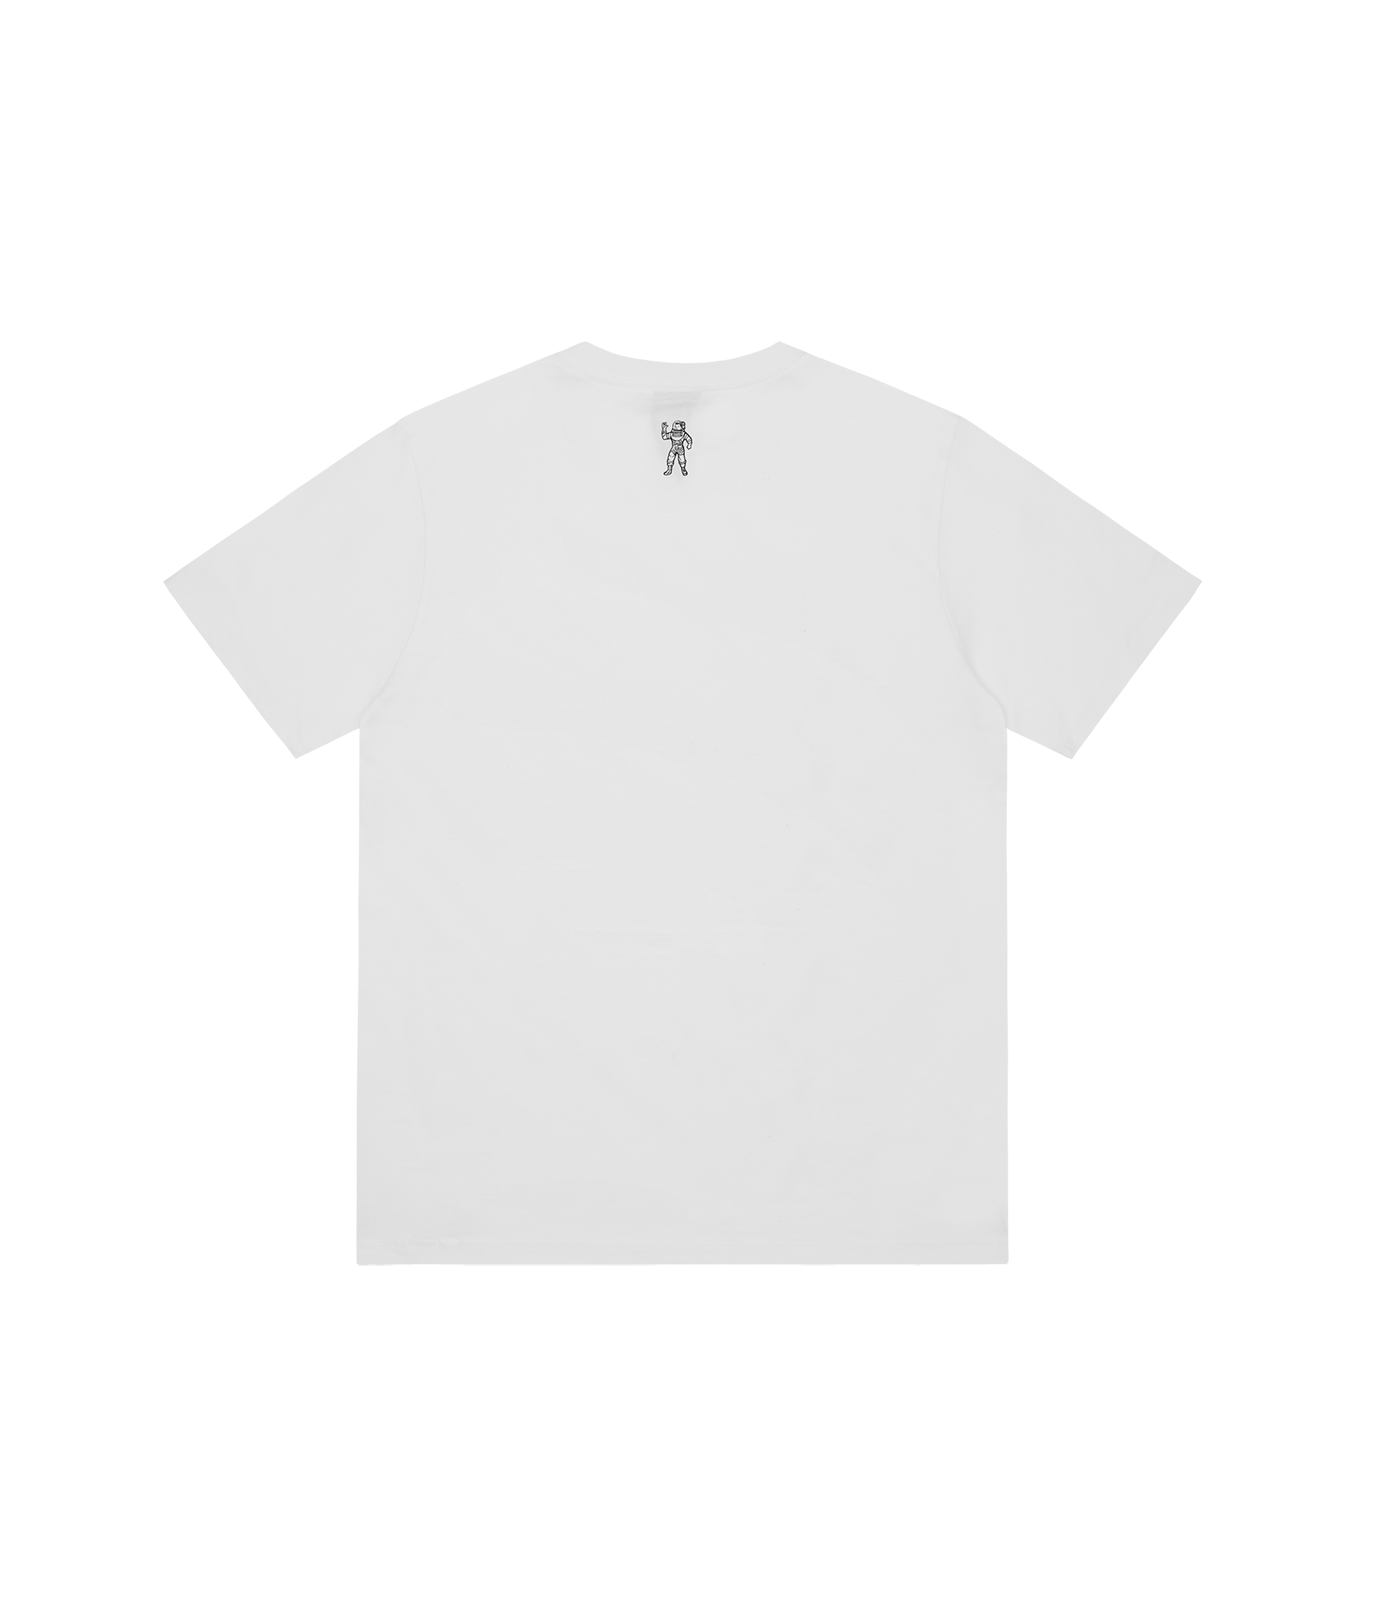 PEANUTS STRAIGHT LOGO T-SHIRT - WHITE